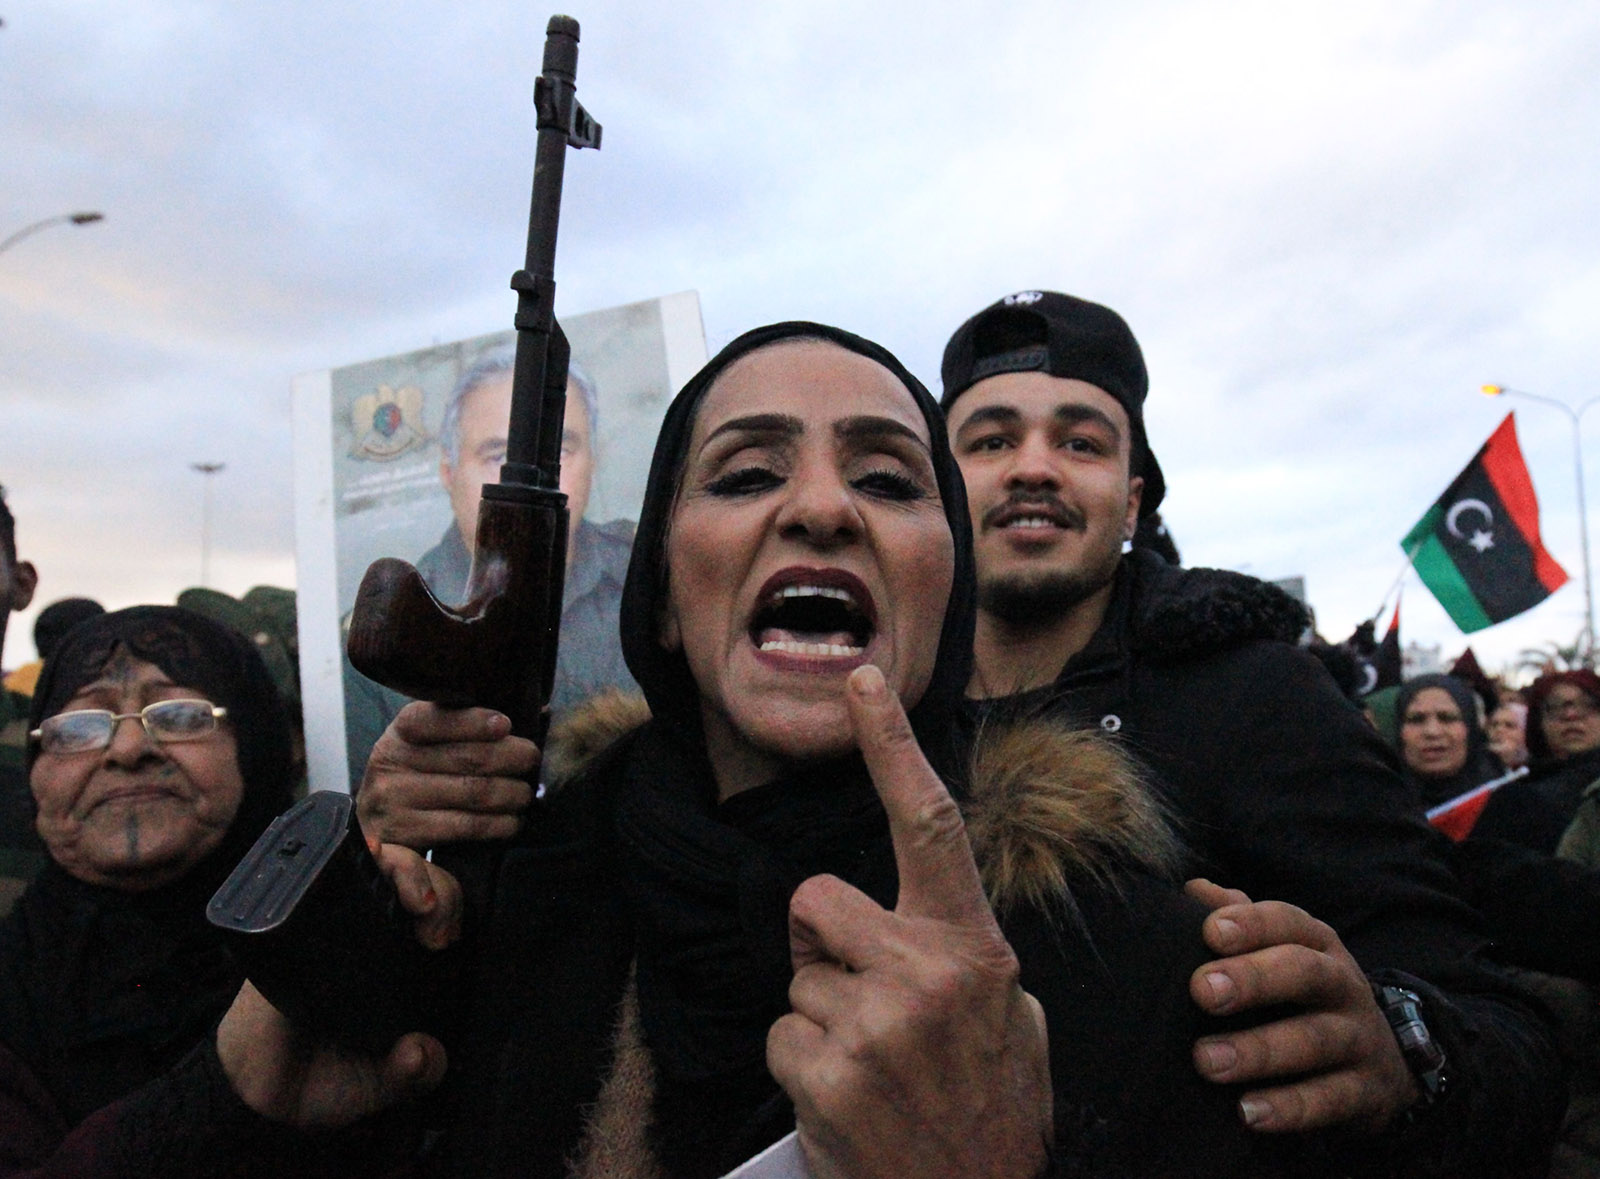 A Libyan woman brandishing a rifle at a protest in Benghazi